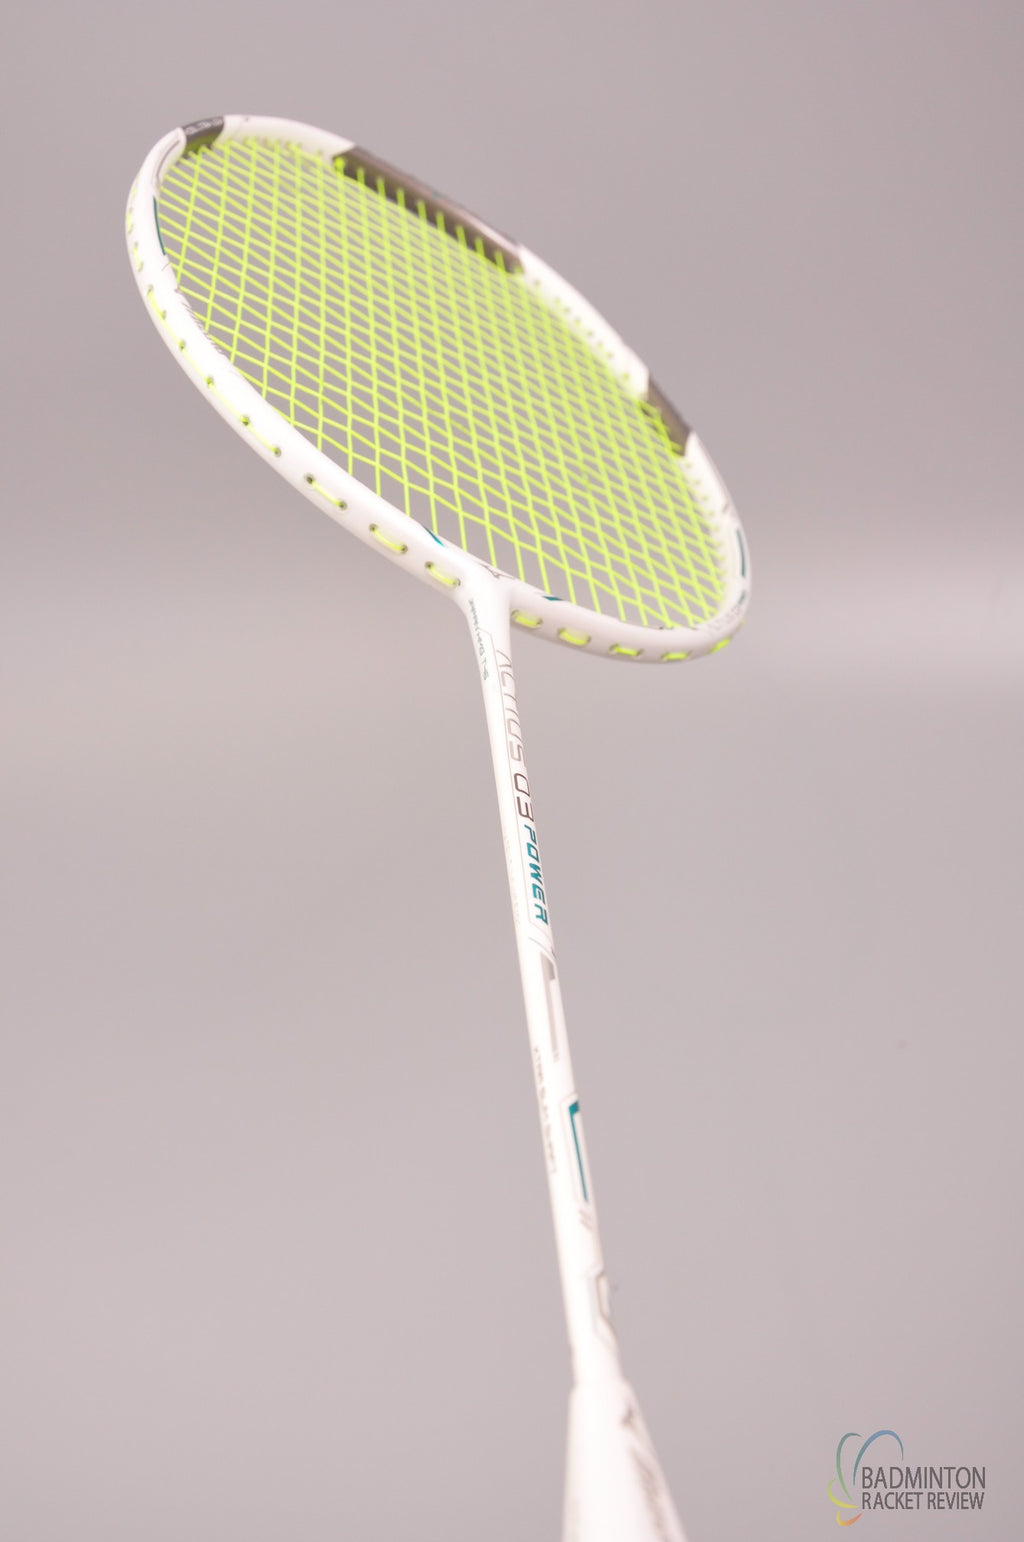 Mizuno Altius 03 Power Badminton Racket - badminton racket review